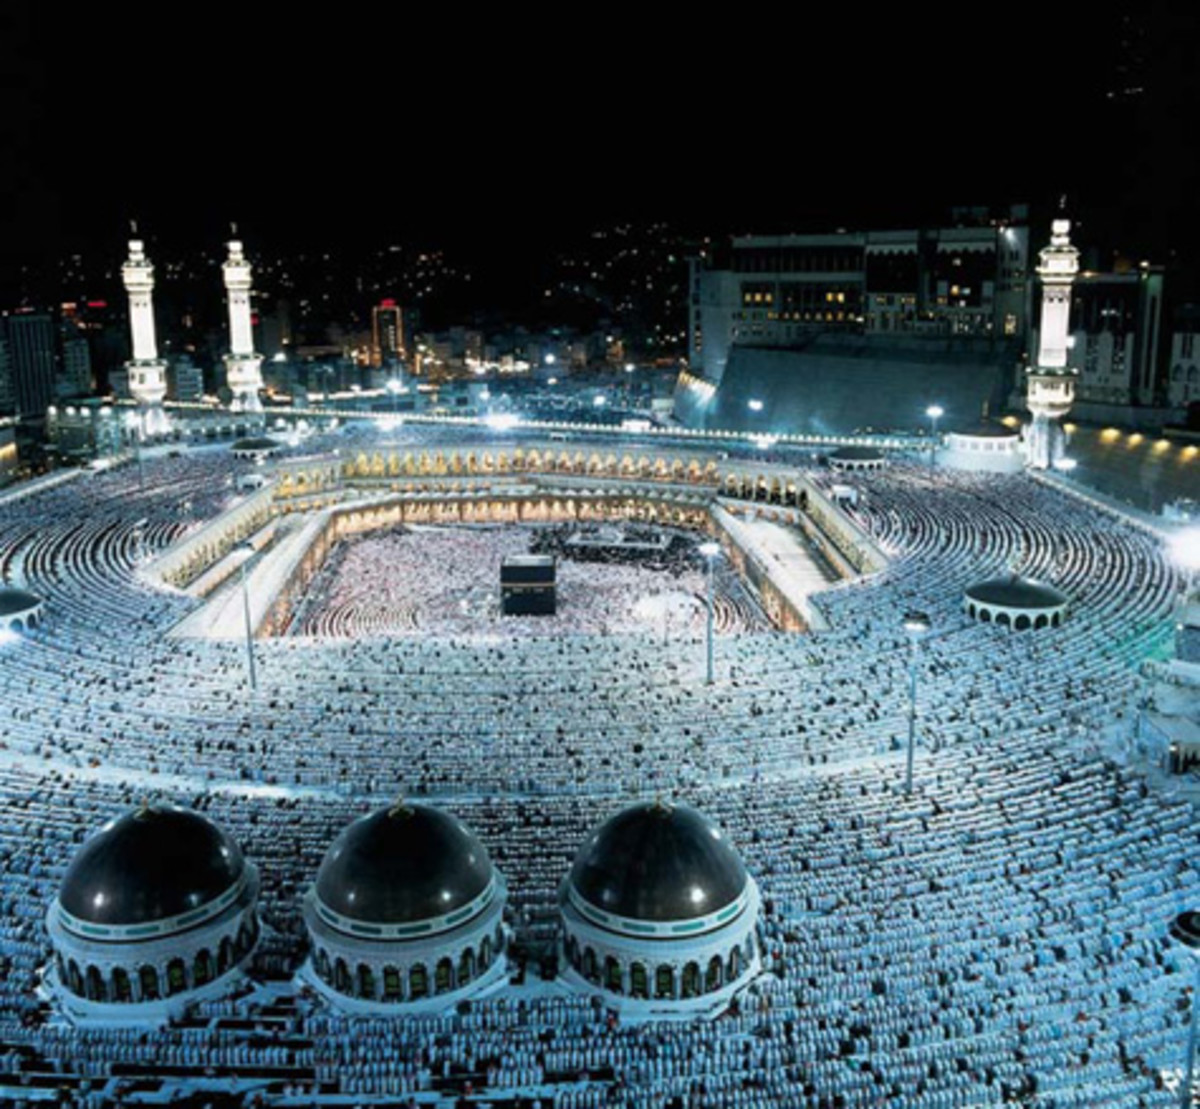 Beautiful image of the Masjid al-Haram in the night